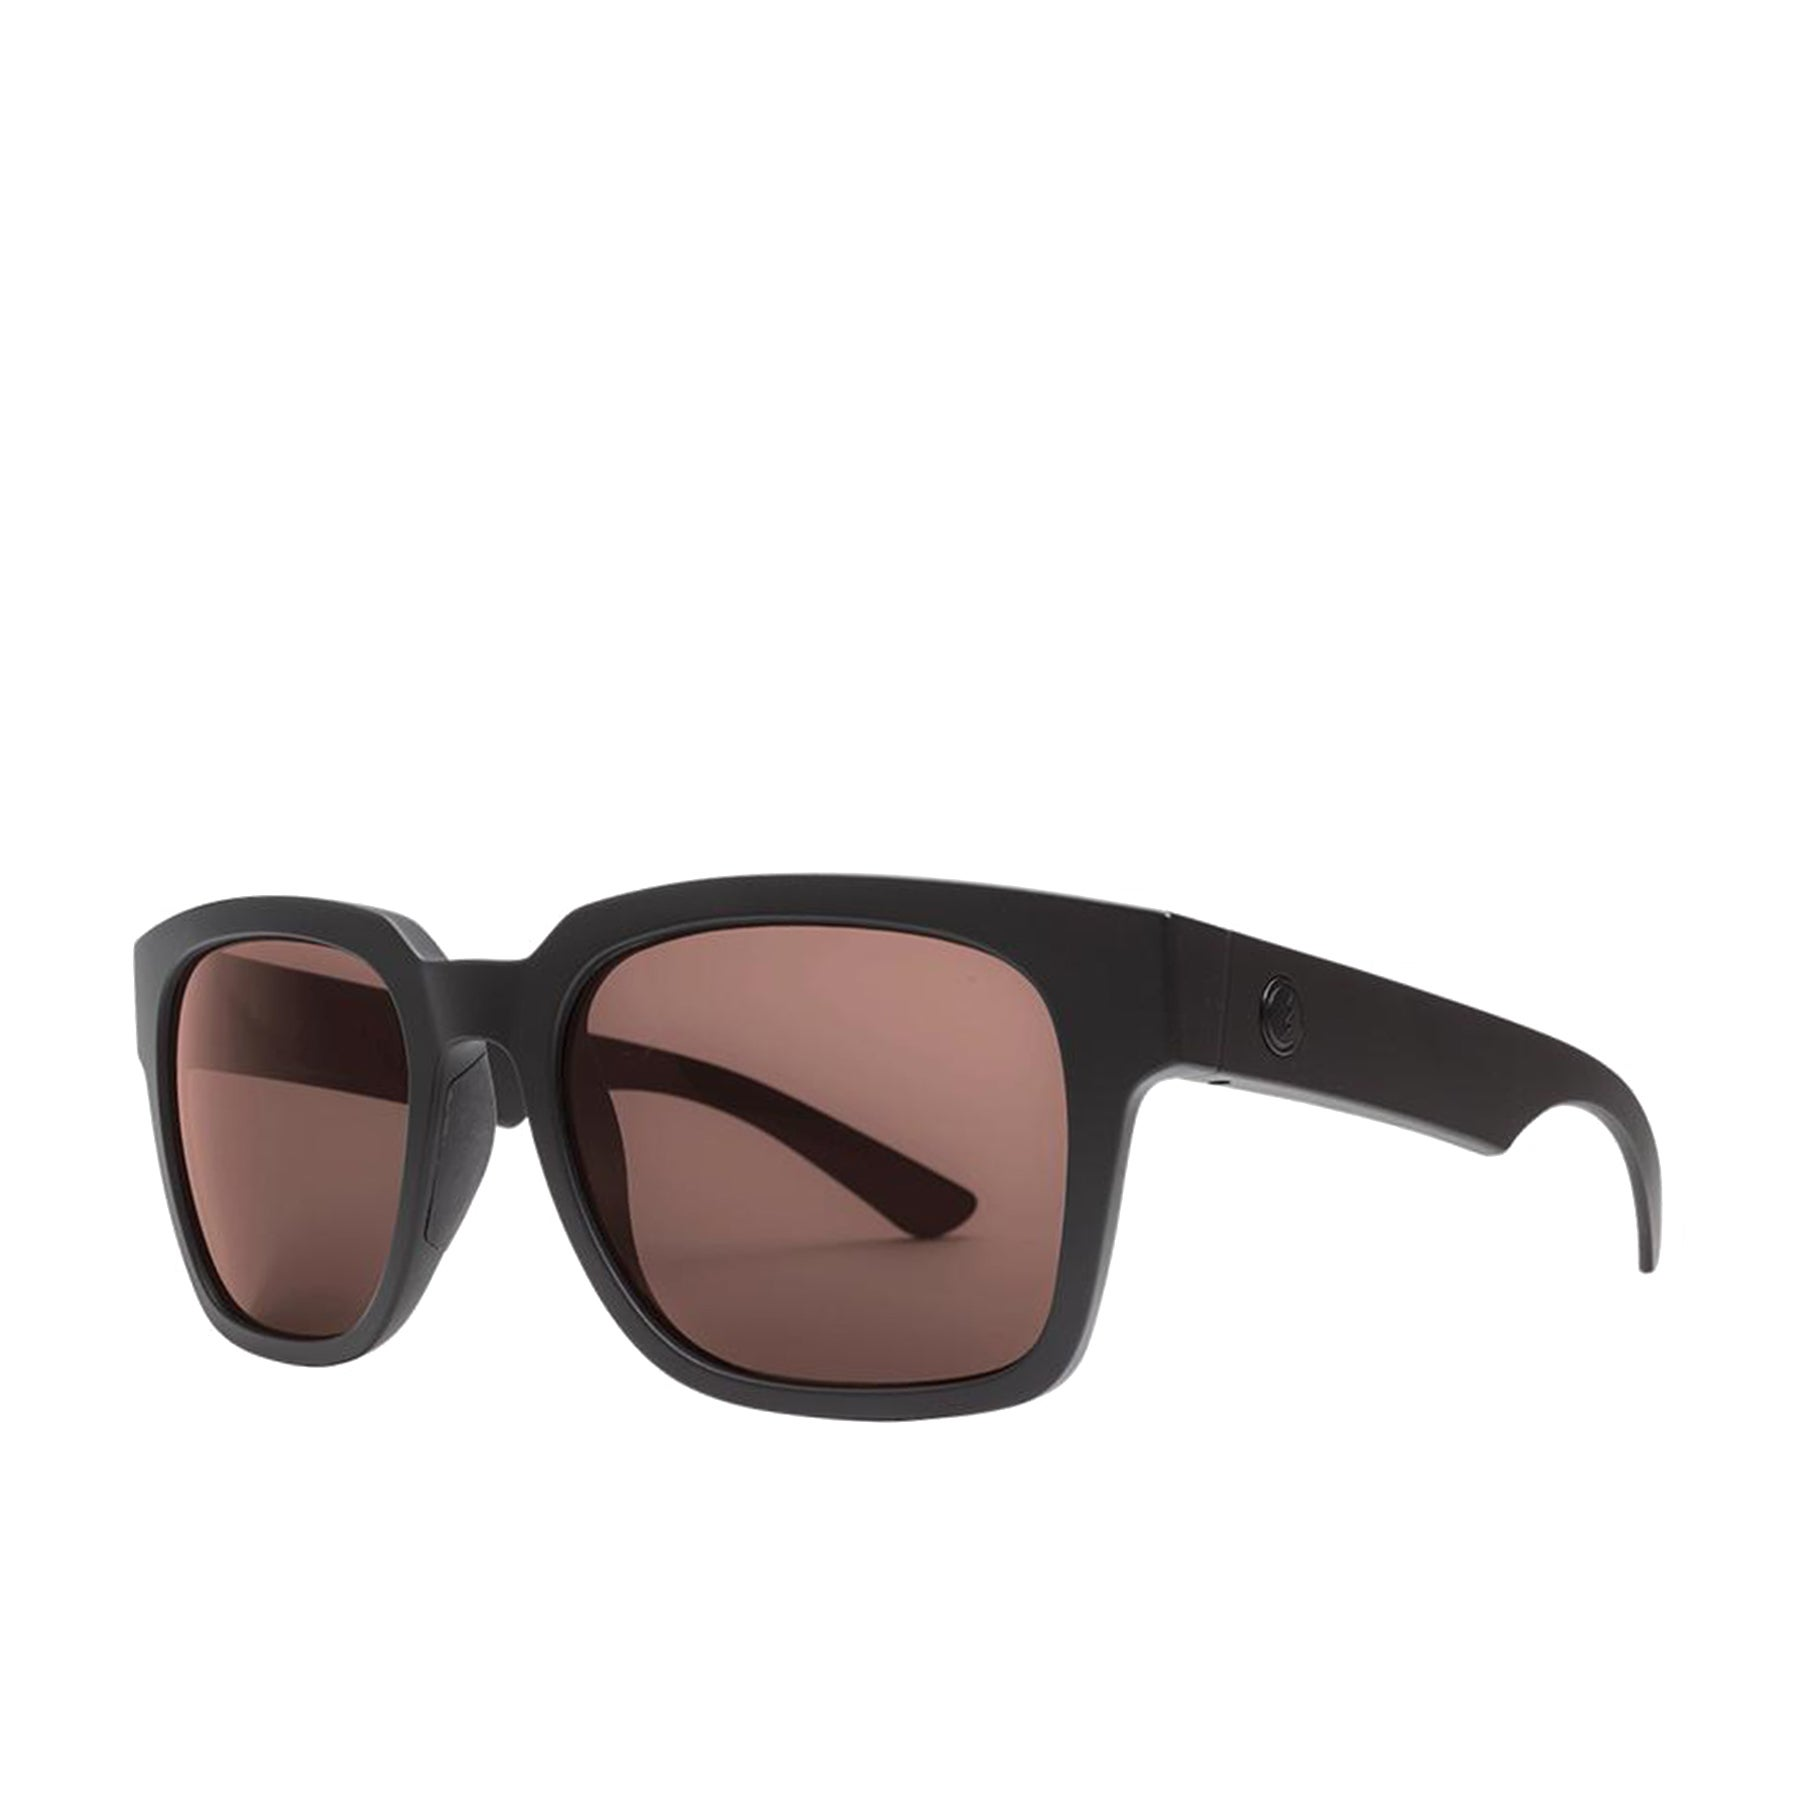 Electric Zombie S Sunglasses - Matte Black ~ Ohm+ Rose